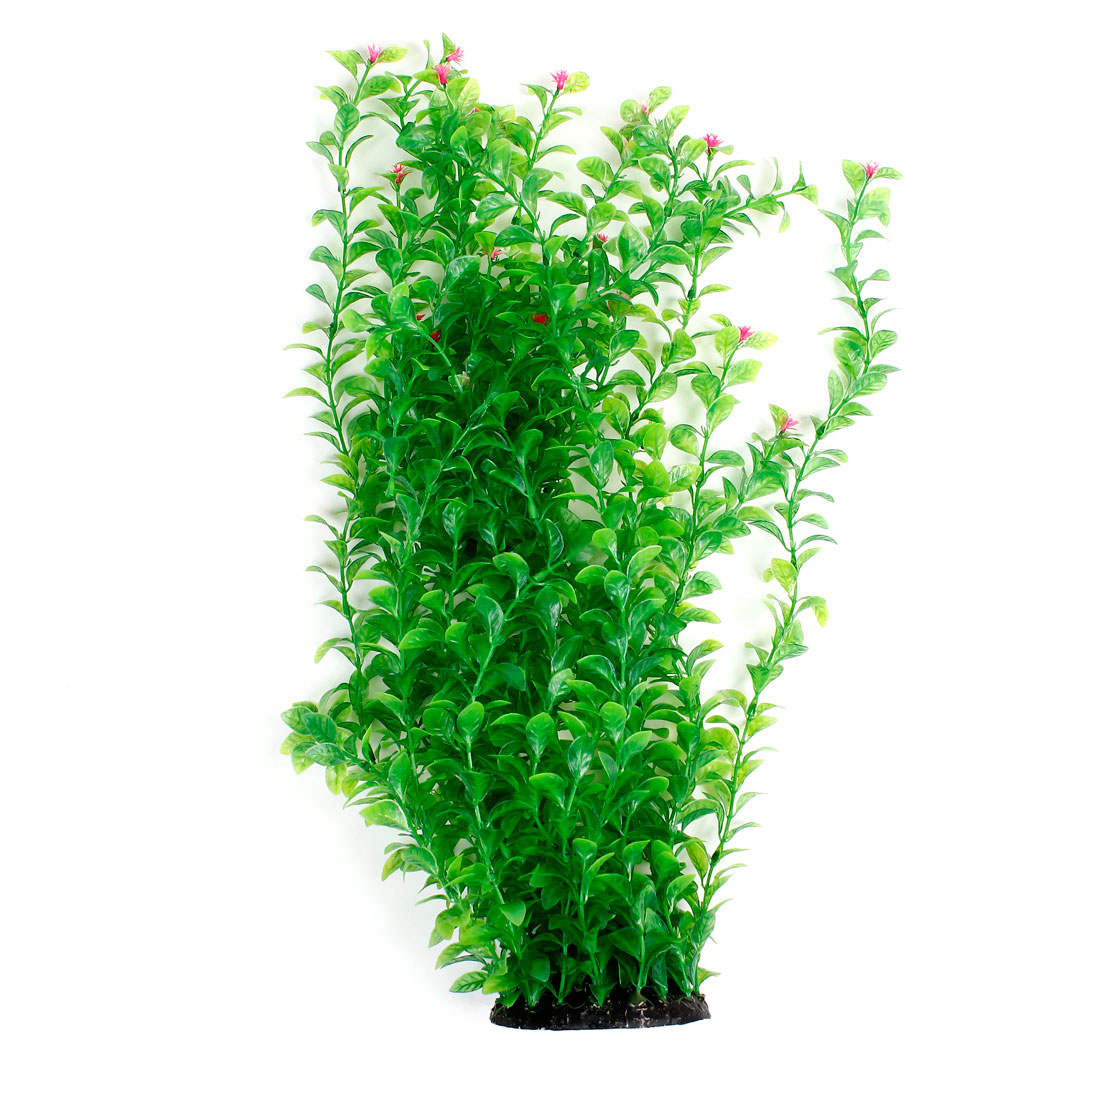 "Ceramic Base Plastic Green Grass Fuchsia Flower Plants 21"" Height for Fish Tank"